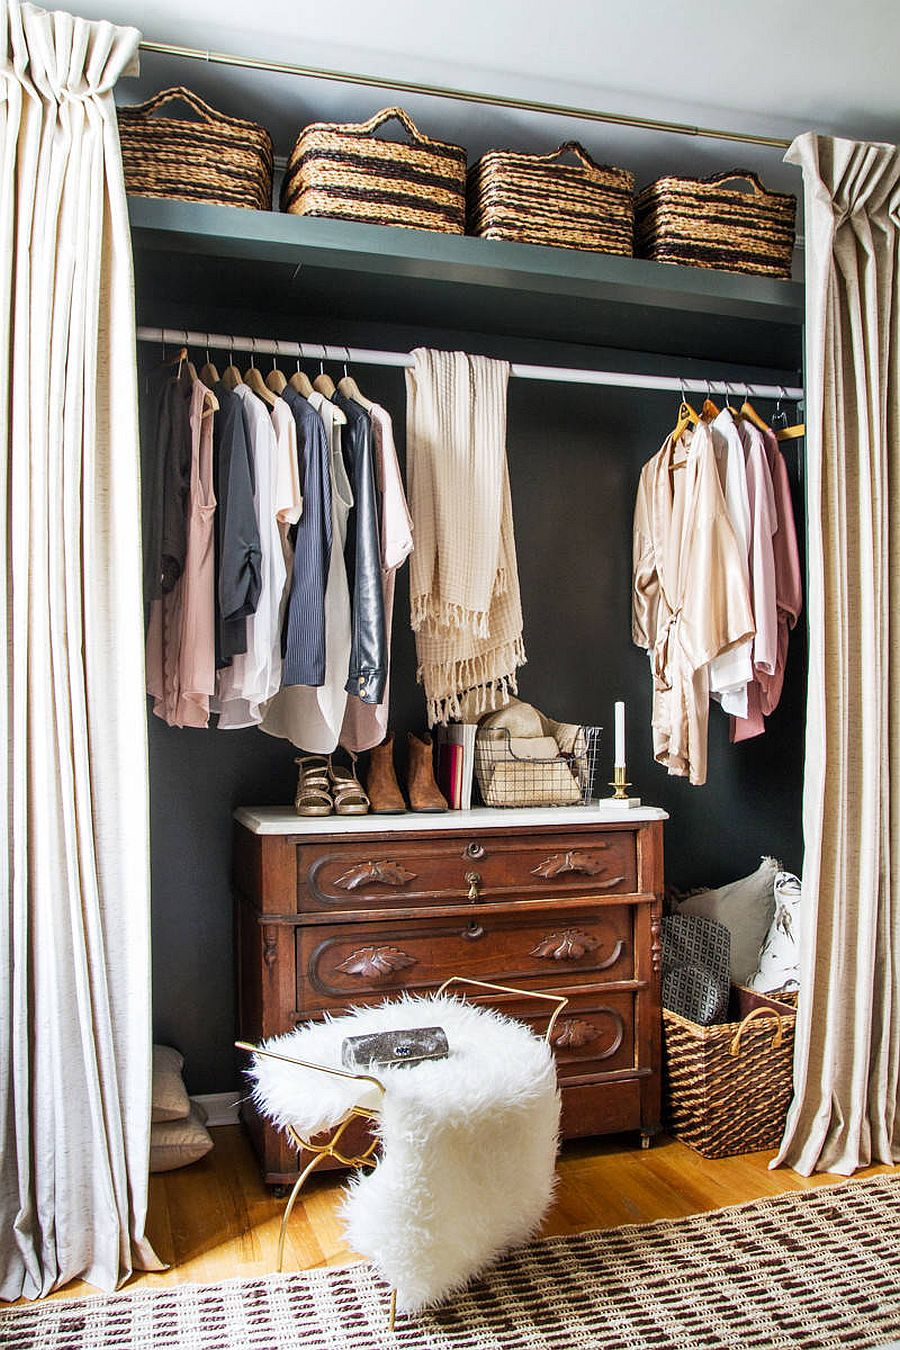 Using curtains instead of doors for the tiny closet saves ample space